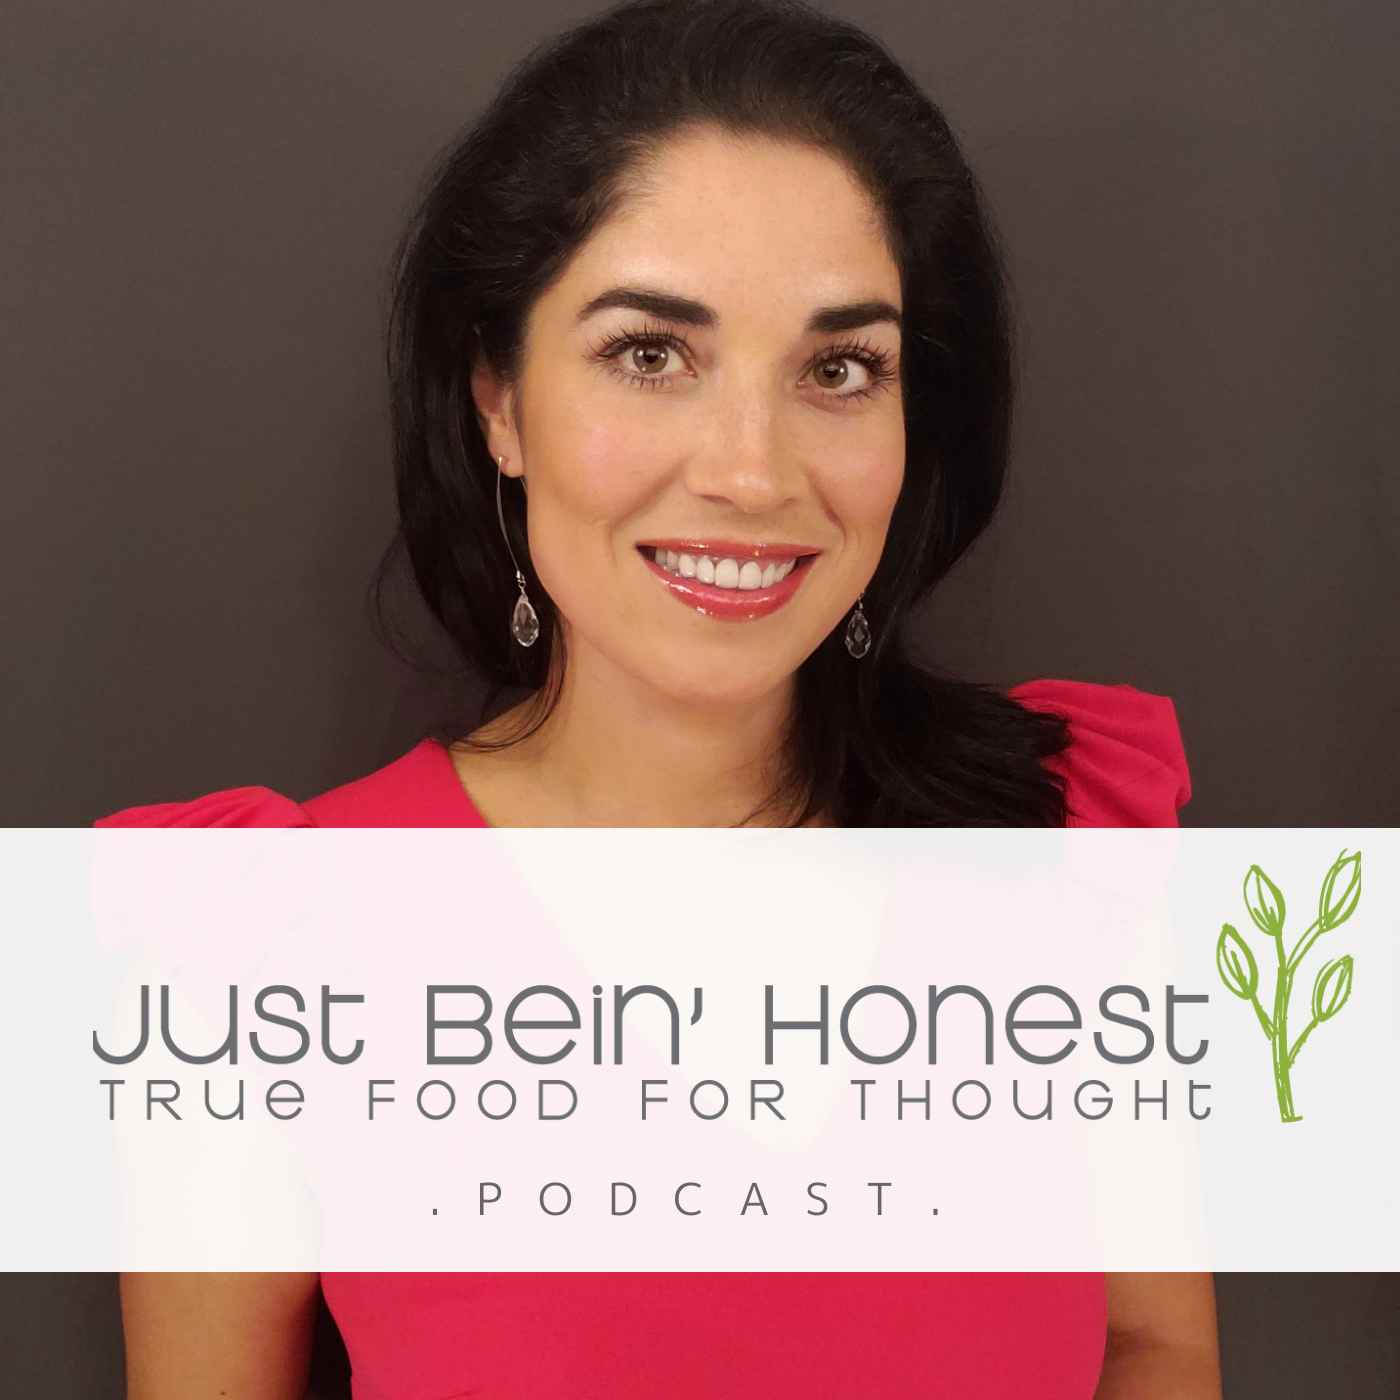 DR. VIVIANA COLES Ep 118 _ Just Bein' Honest - PODCAST